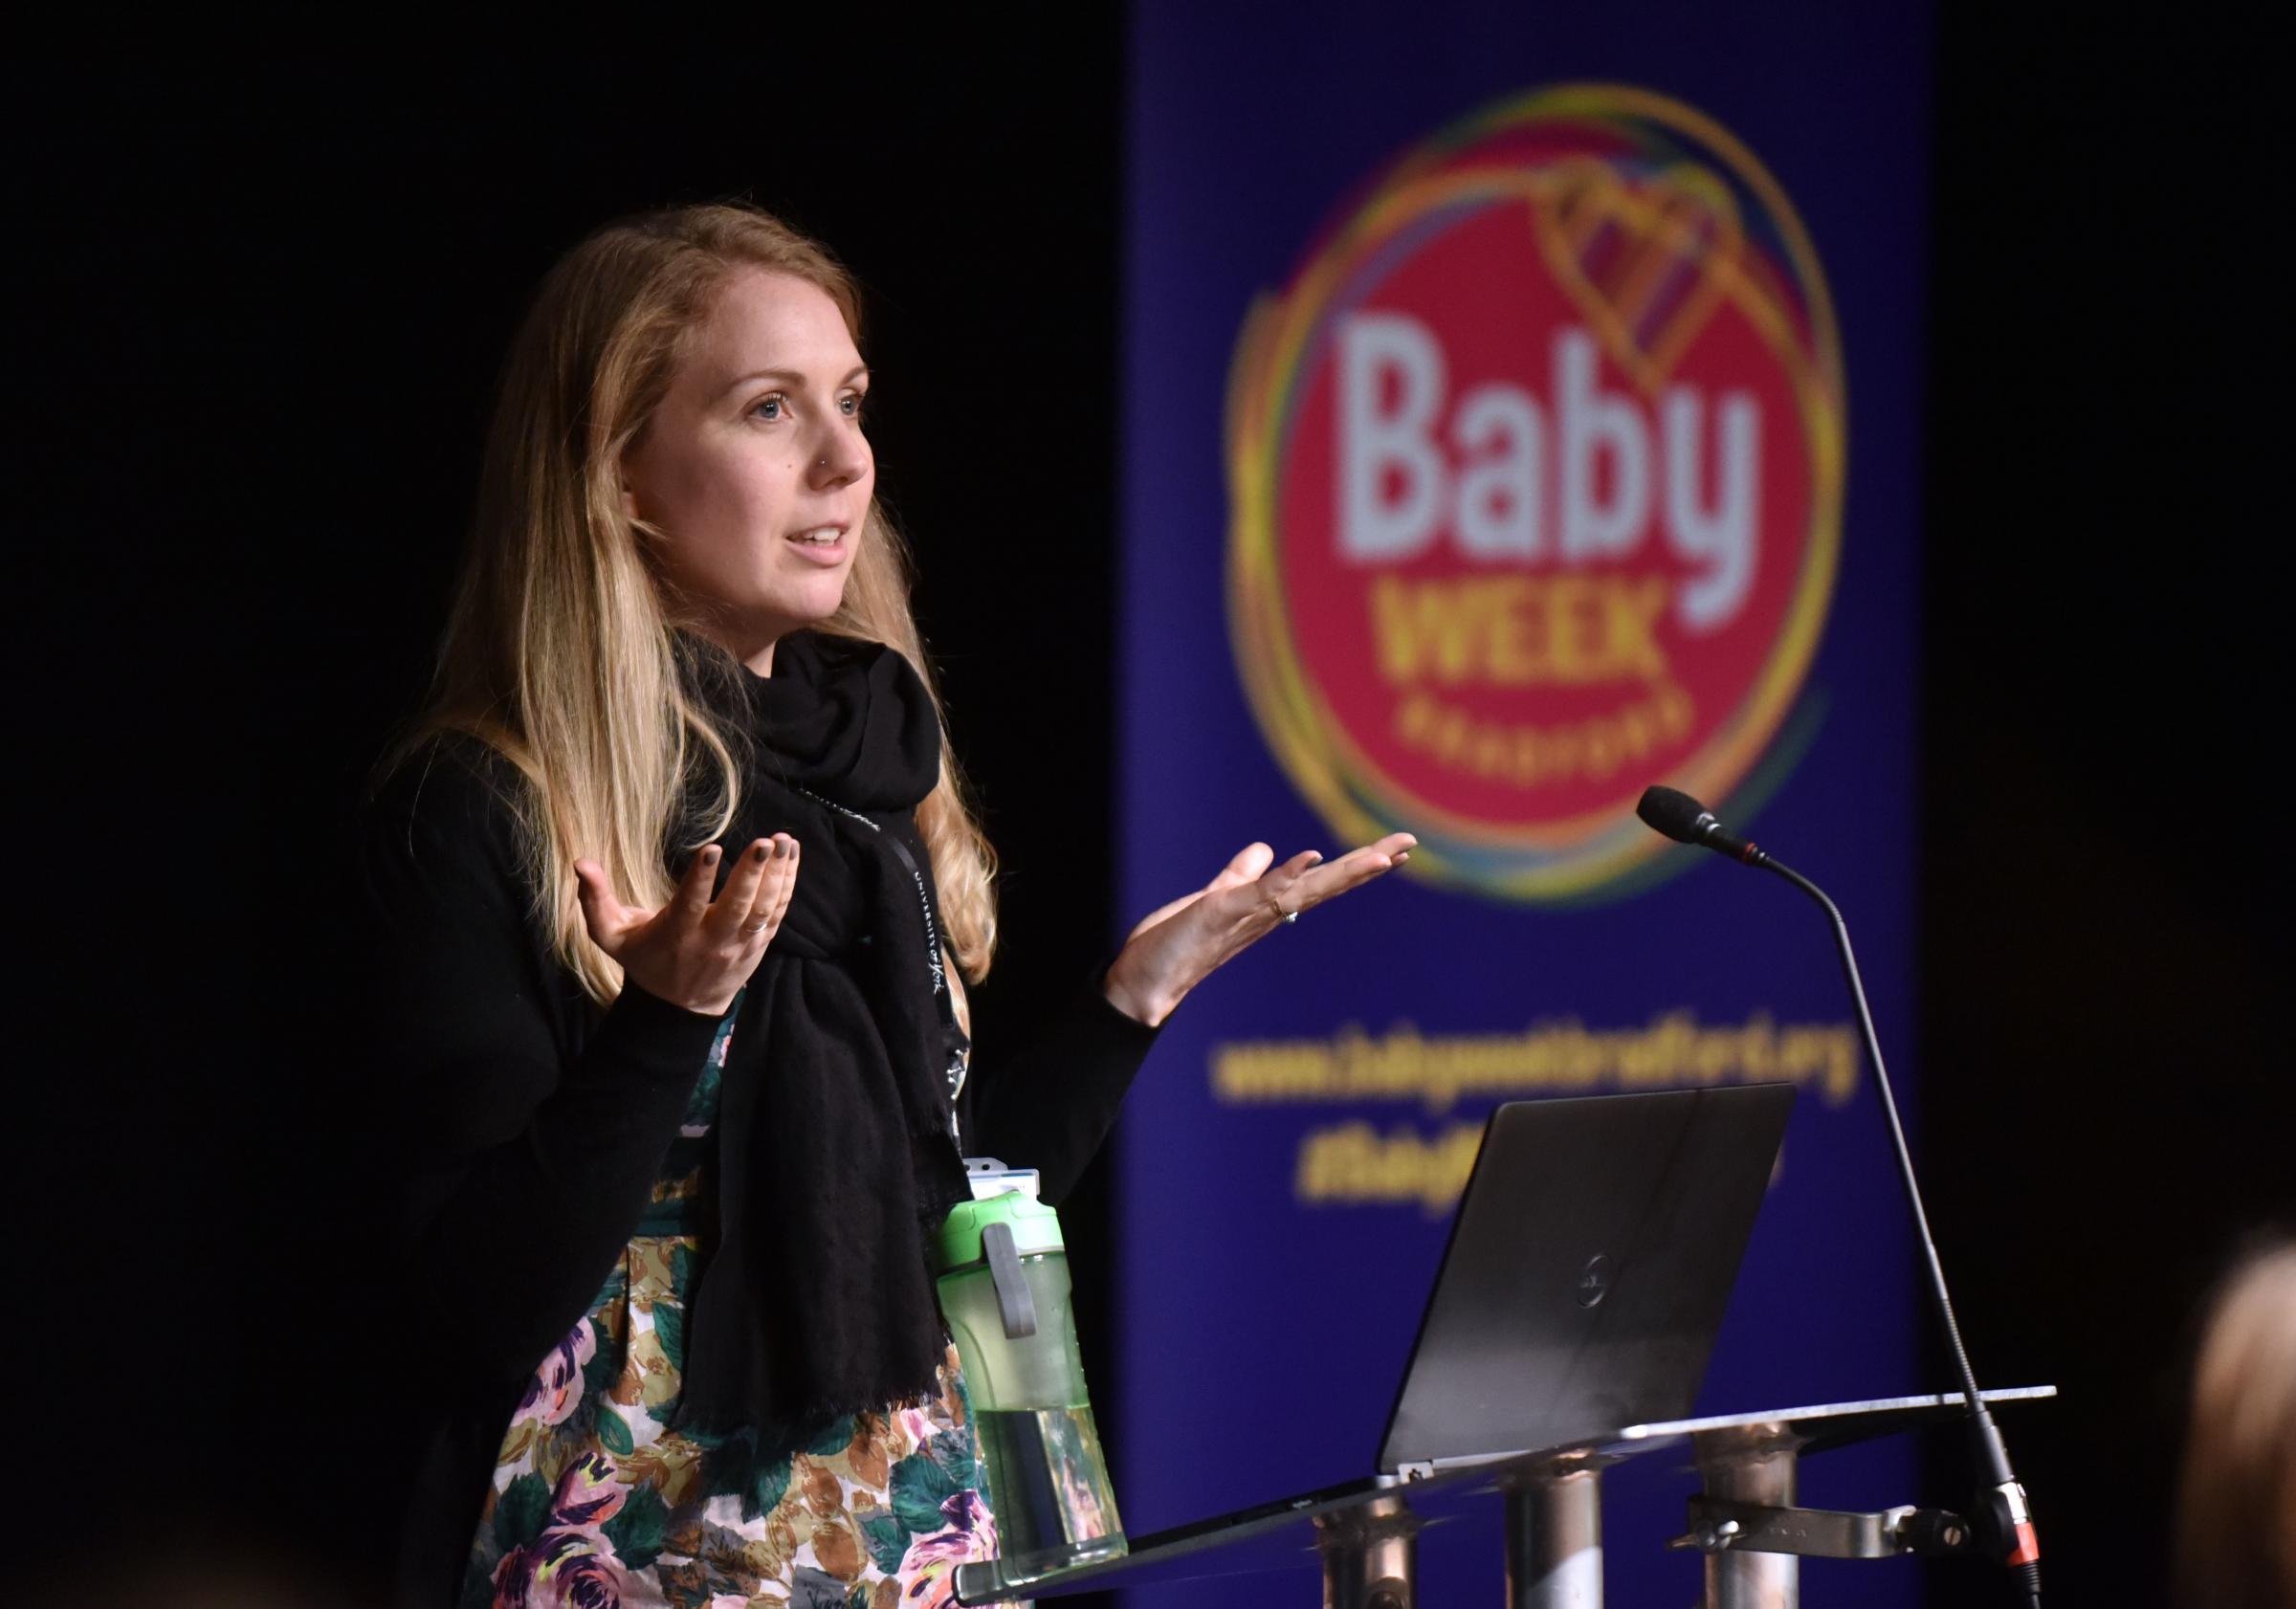 Bradford baby Week comes to and end as Dea Nielsen from Born in Bradford speaking to the auidence.